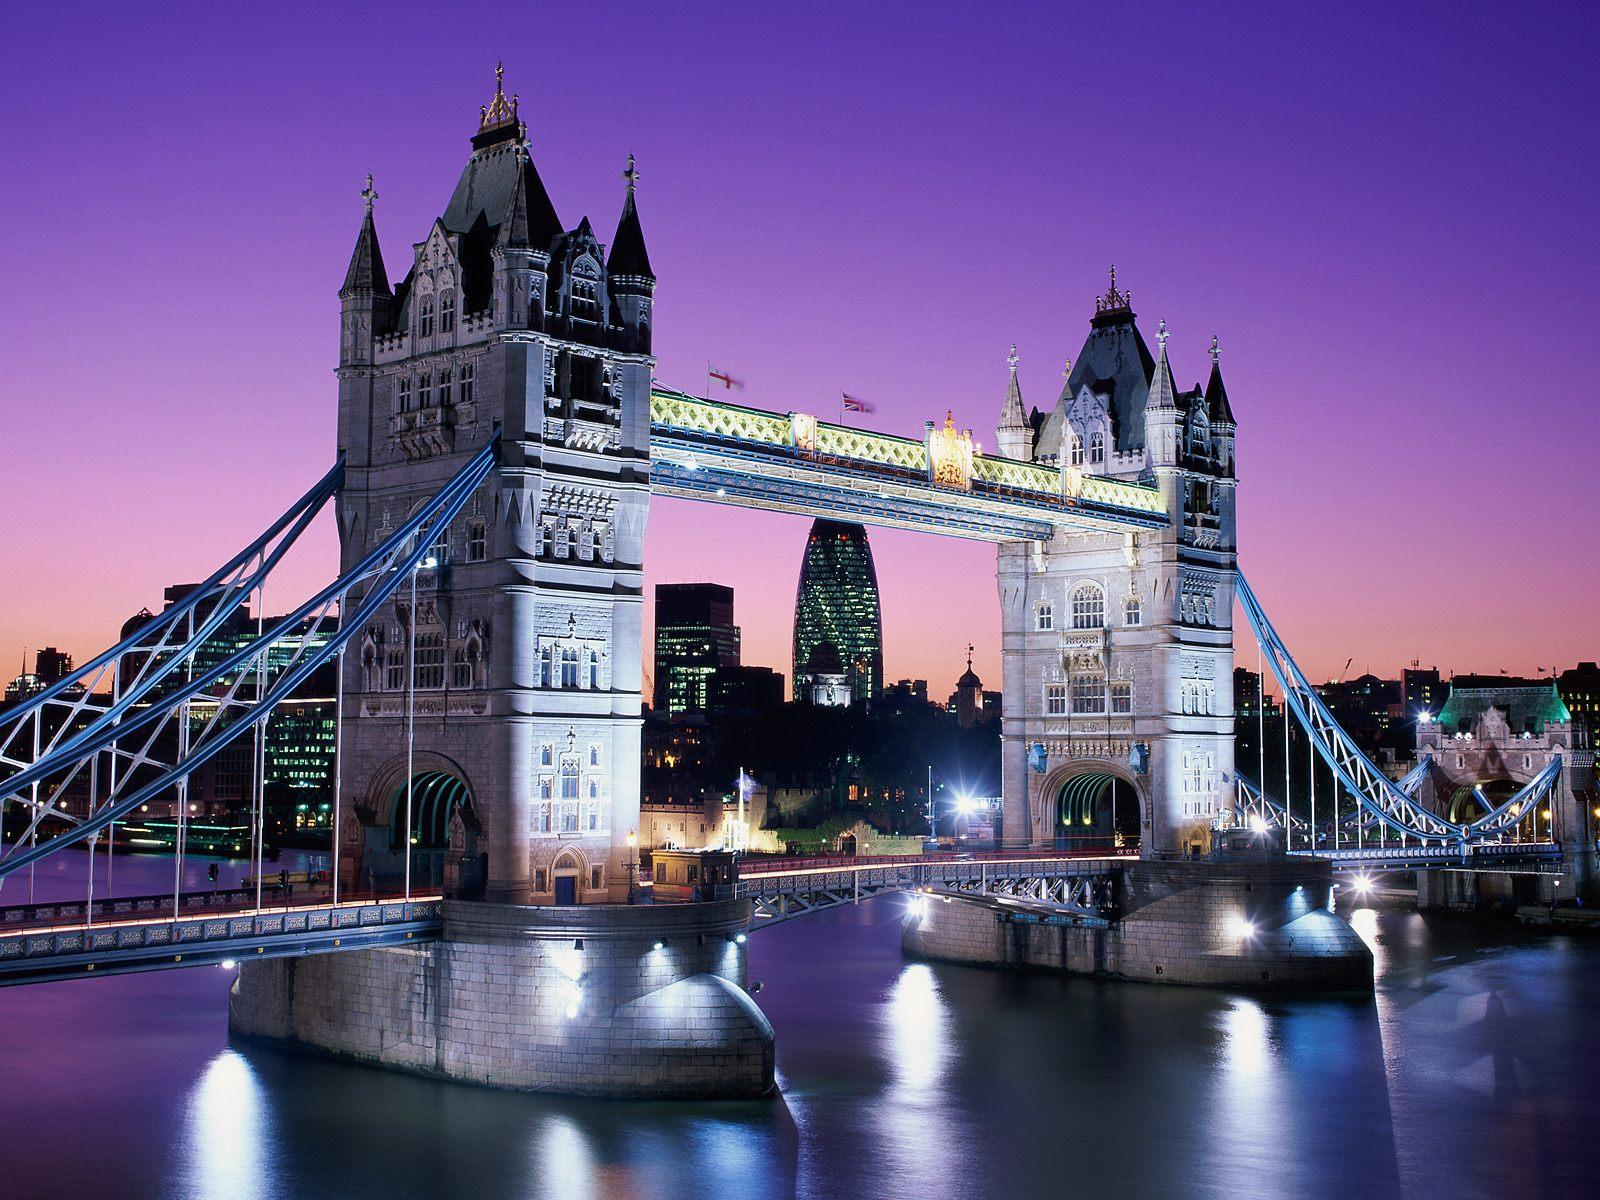 London Tower Bridge Wallpaper 22 - 1600 X 1200 | Imgnooz.com